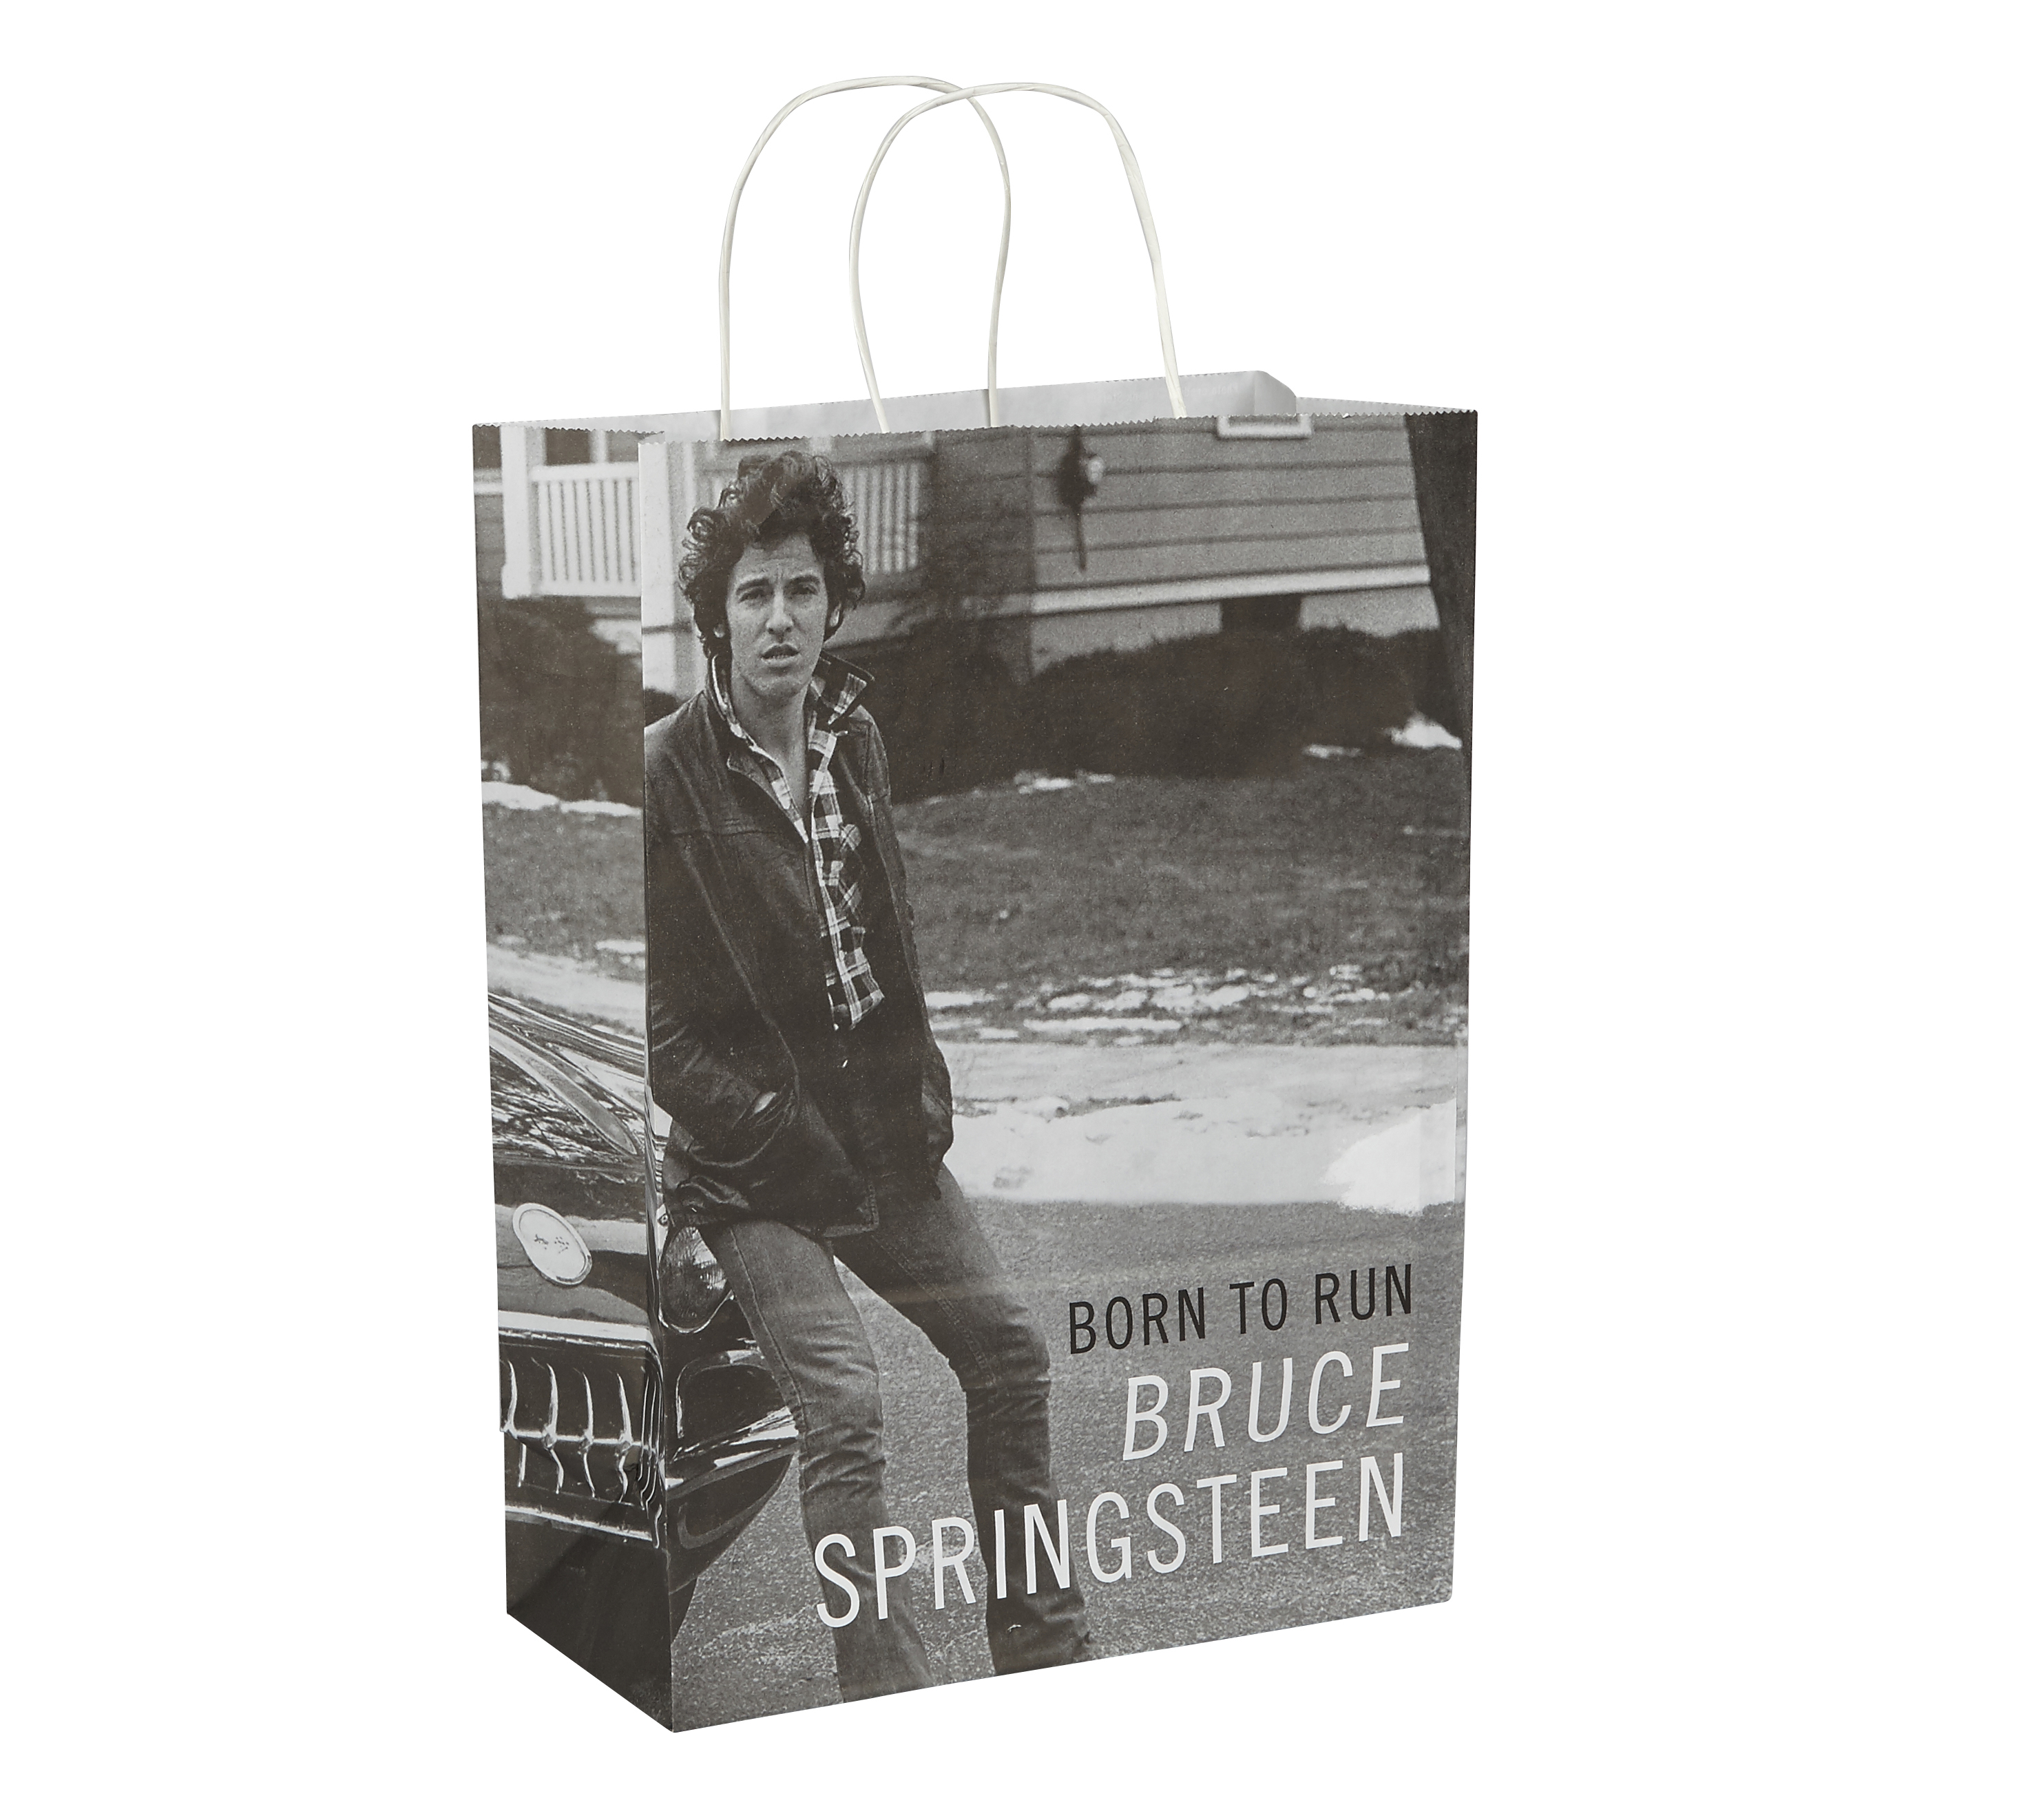 Bruce Springsteen Bespoke Paper Carrier Bag